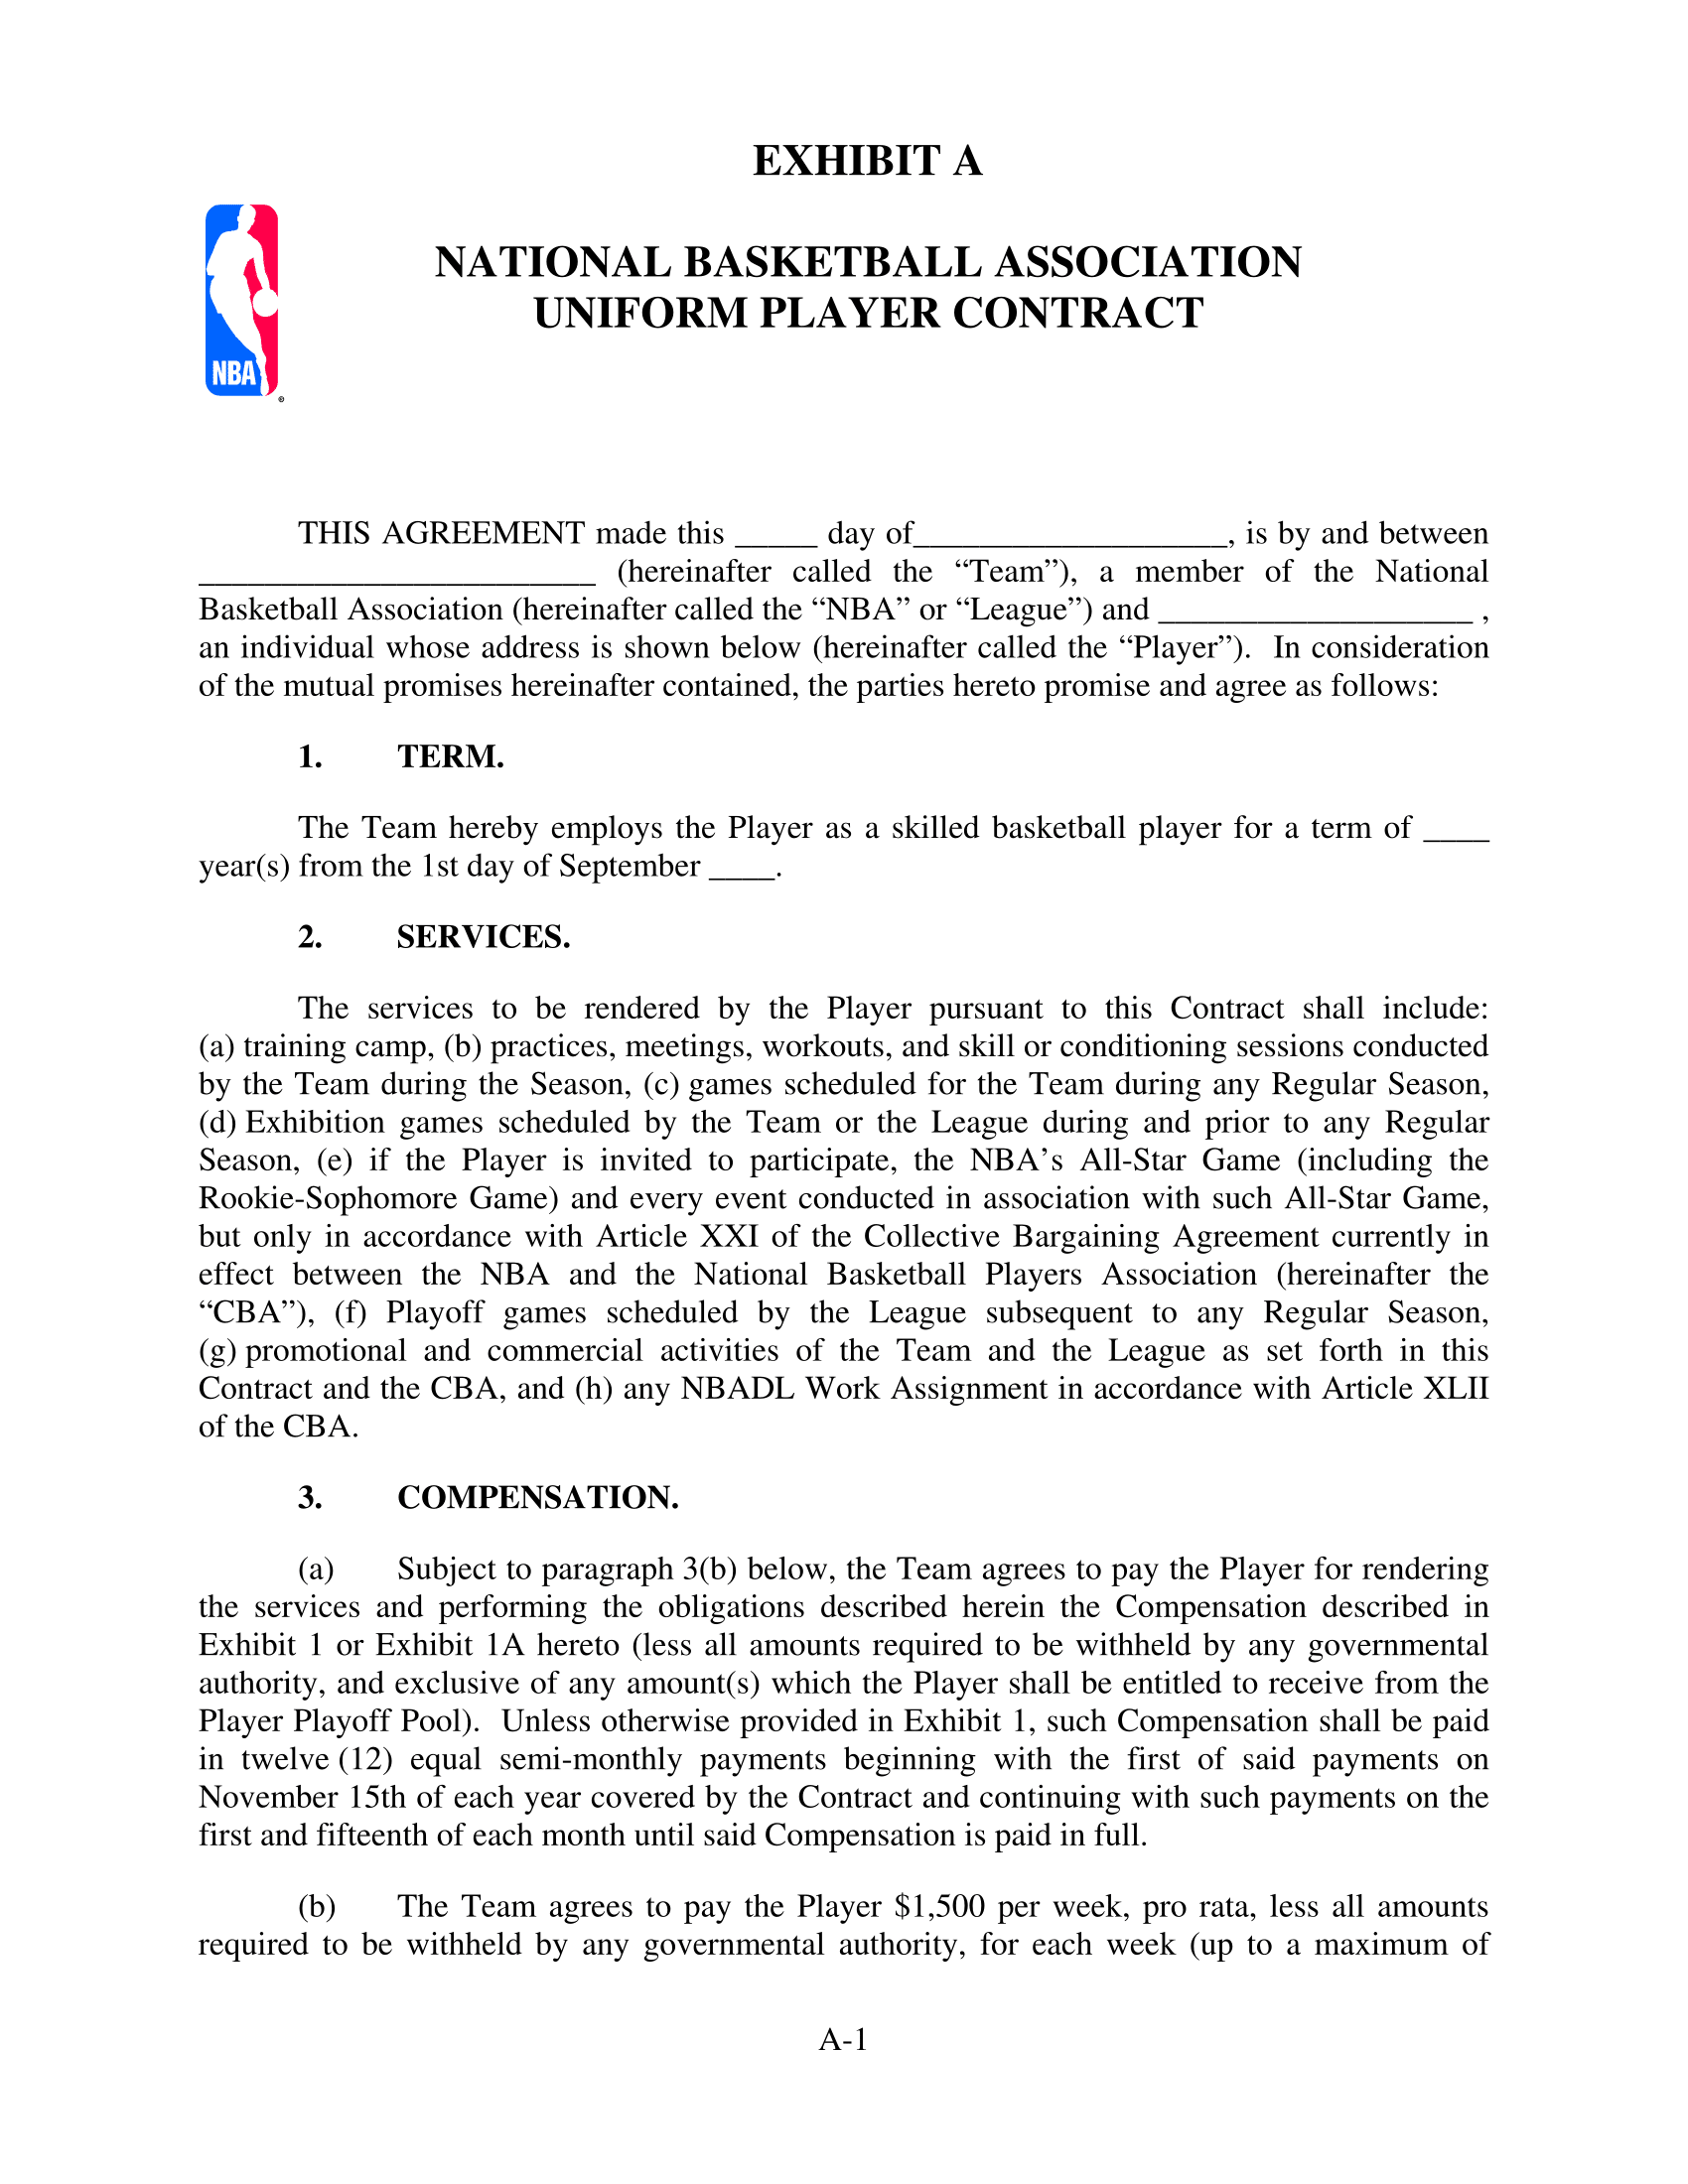 nba uniform player contract 01